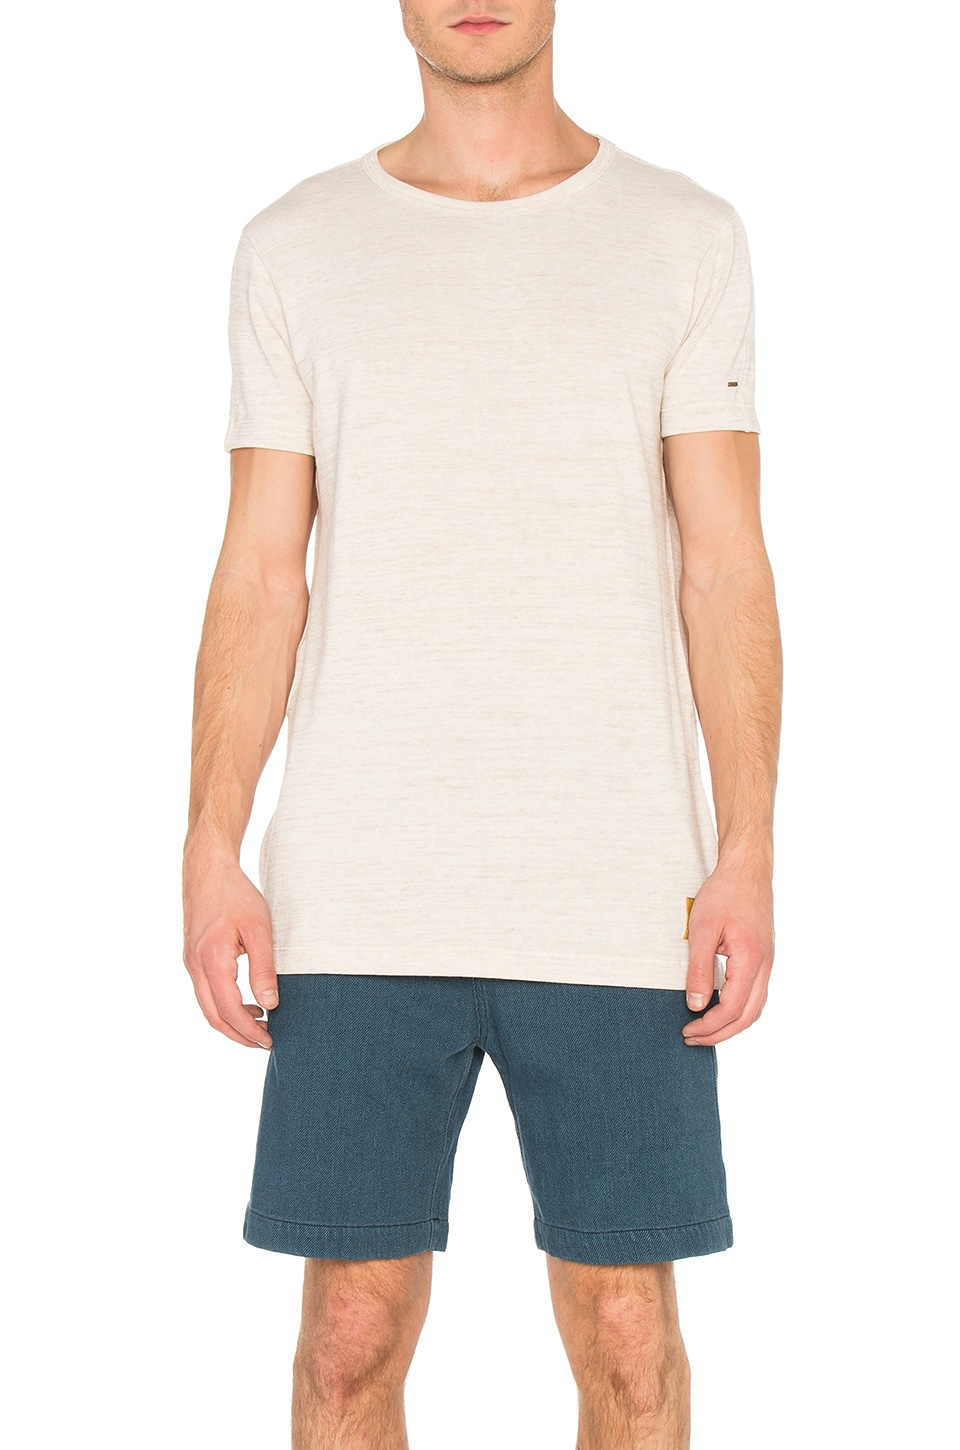 Long Tee by Scotch & Soda